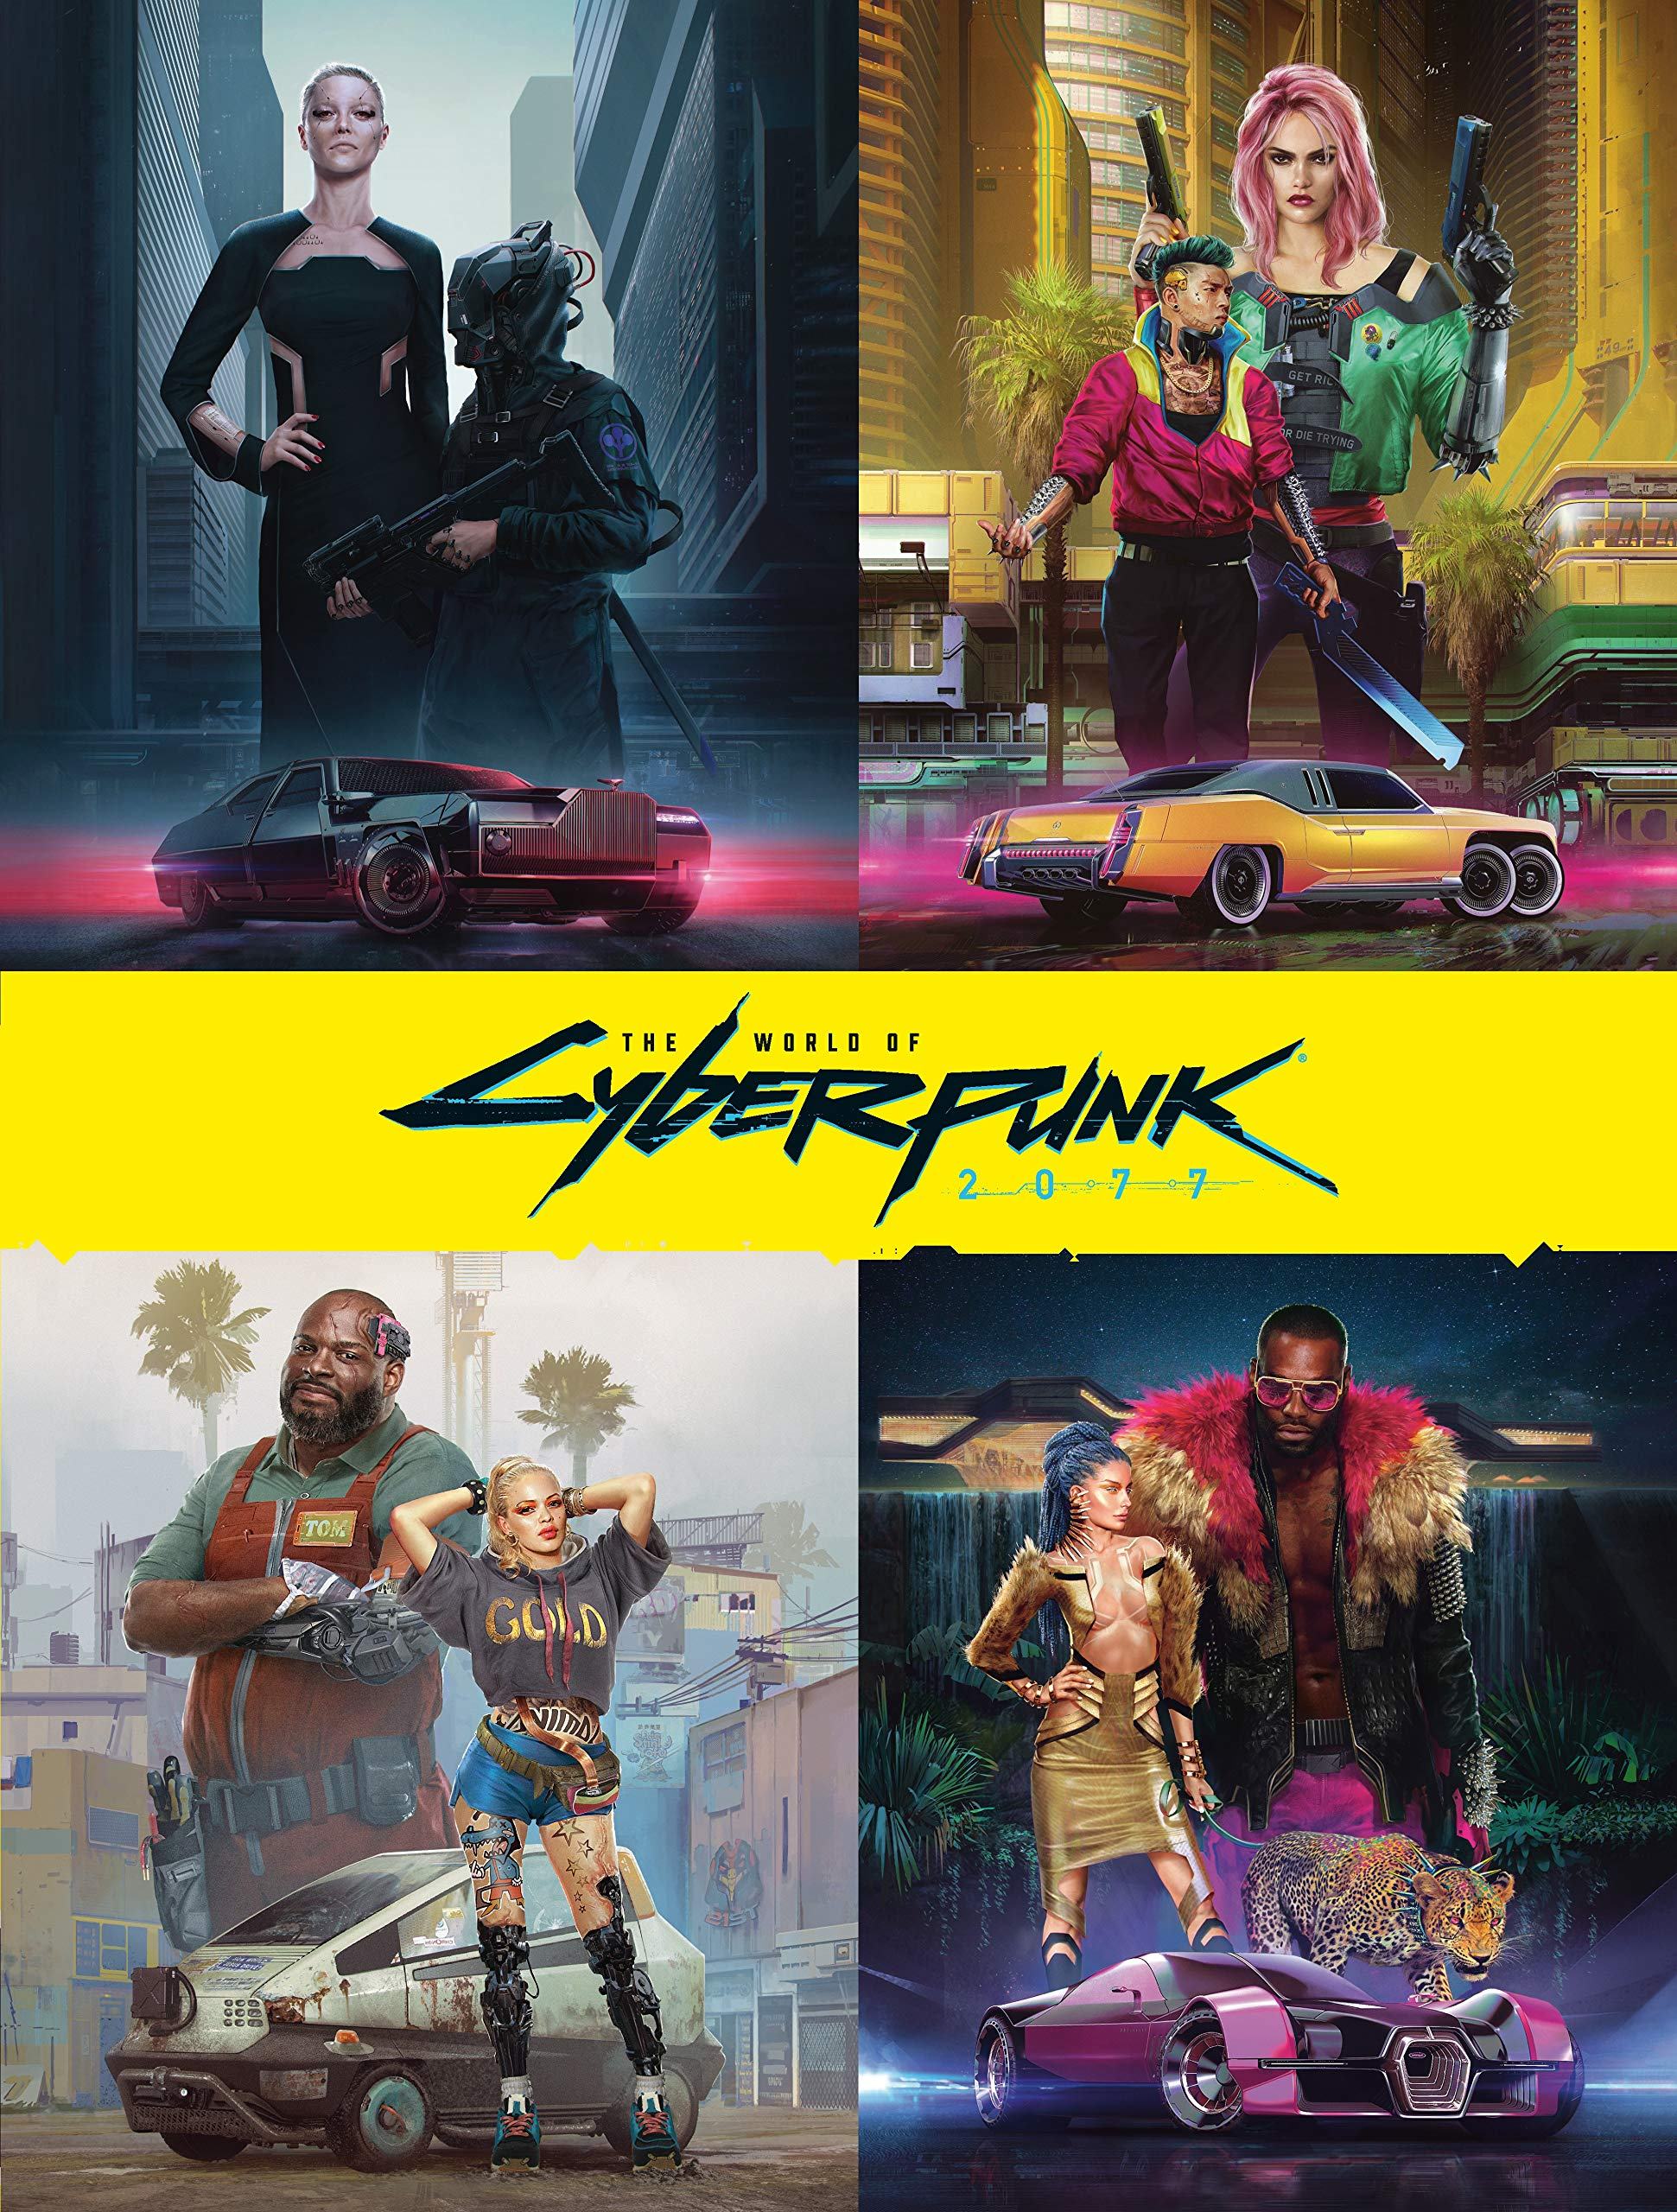 The World of Cyberpunk 2077 (192-Page Hardcover Book) $22.66 + Free Shipping via Amazon